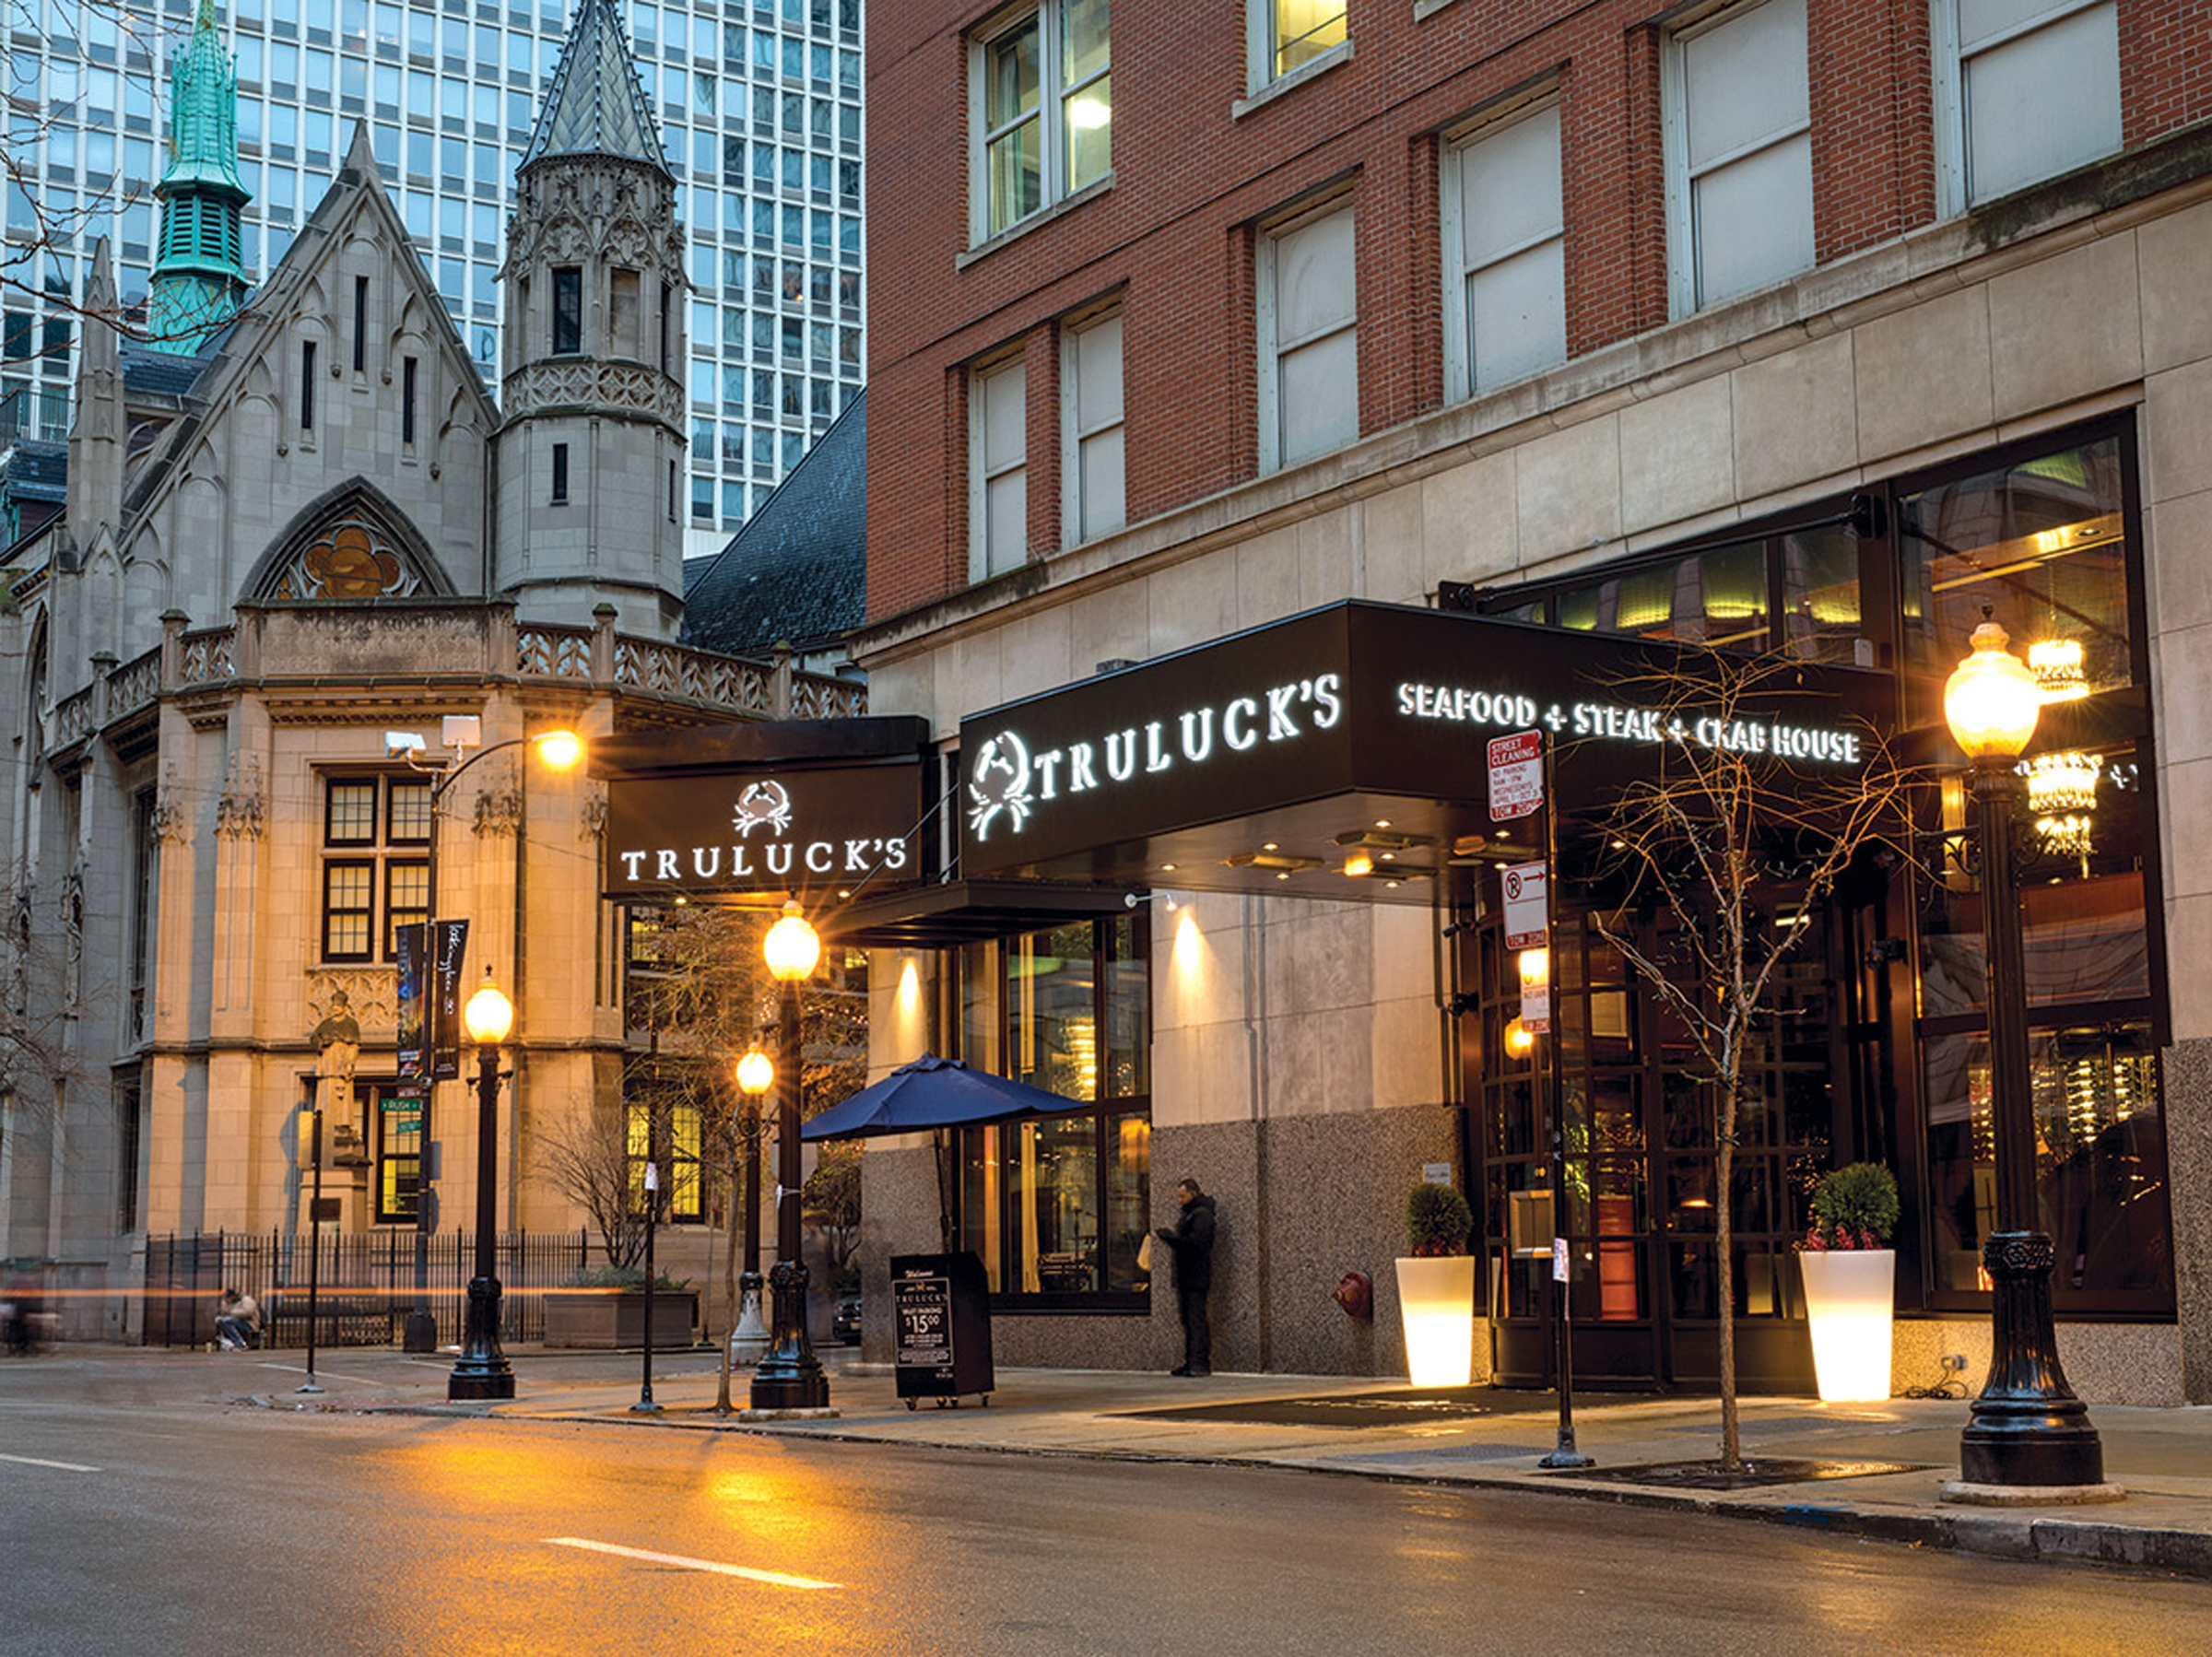 Truluck's: New Seafood Restaurant Docks in Chicago